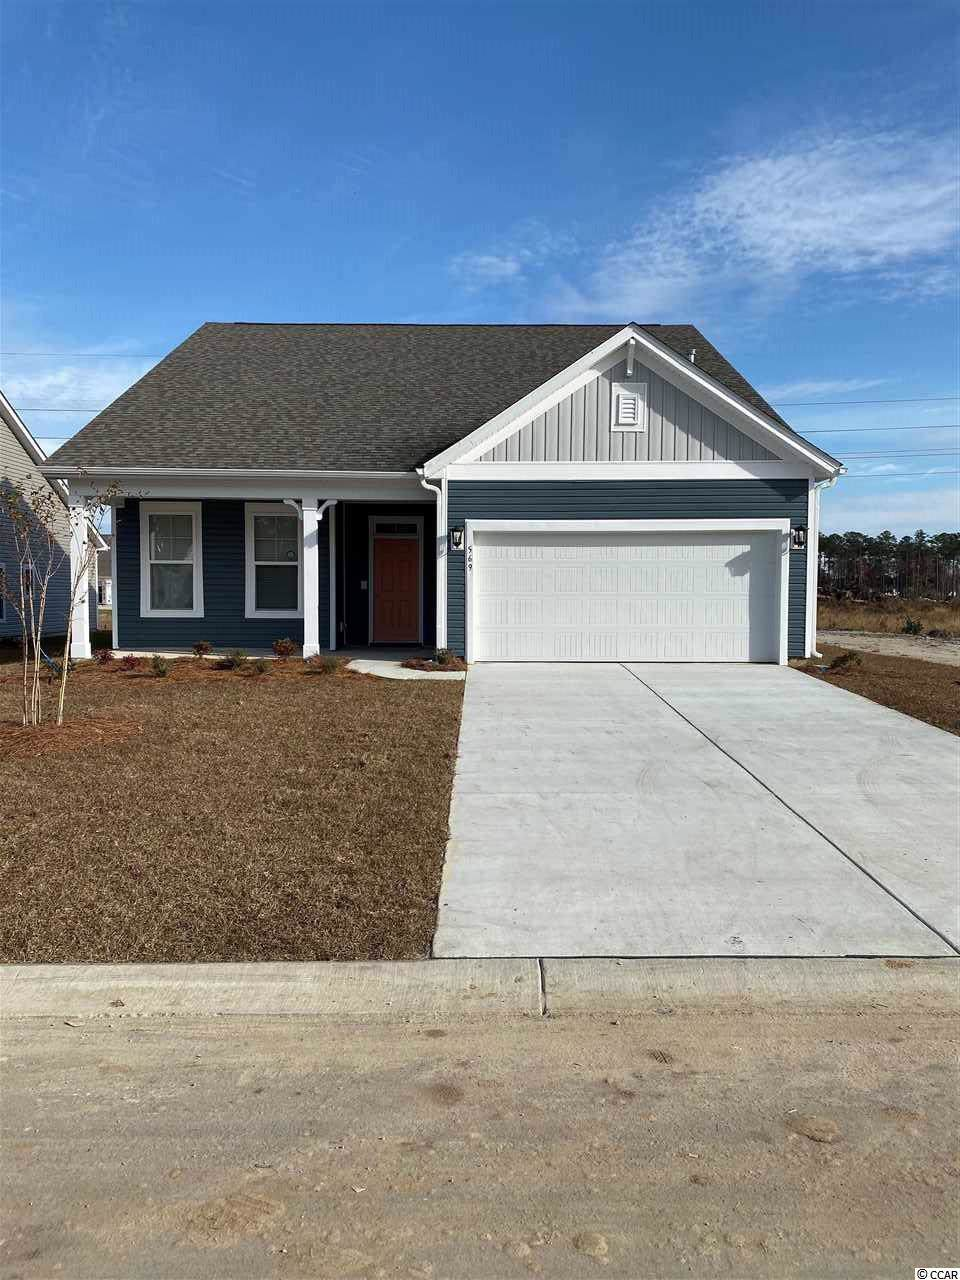 569 Oyster Dr. - Photo 1